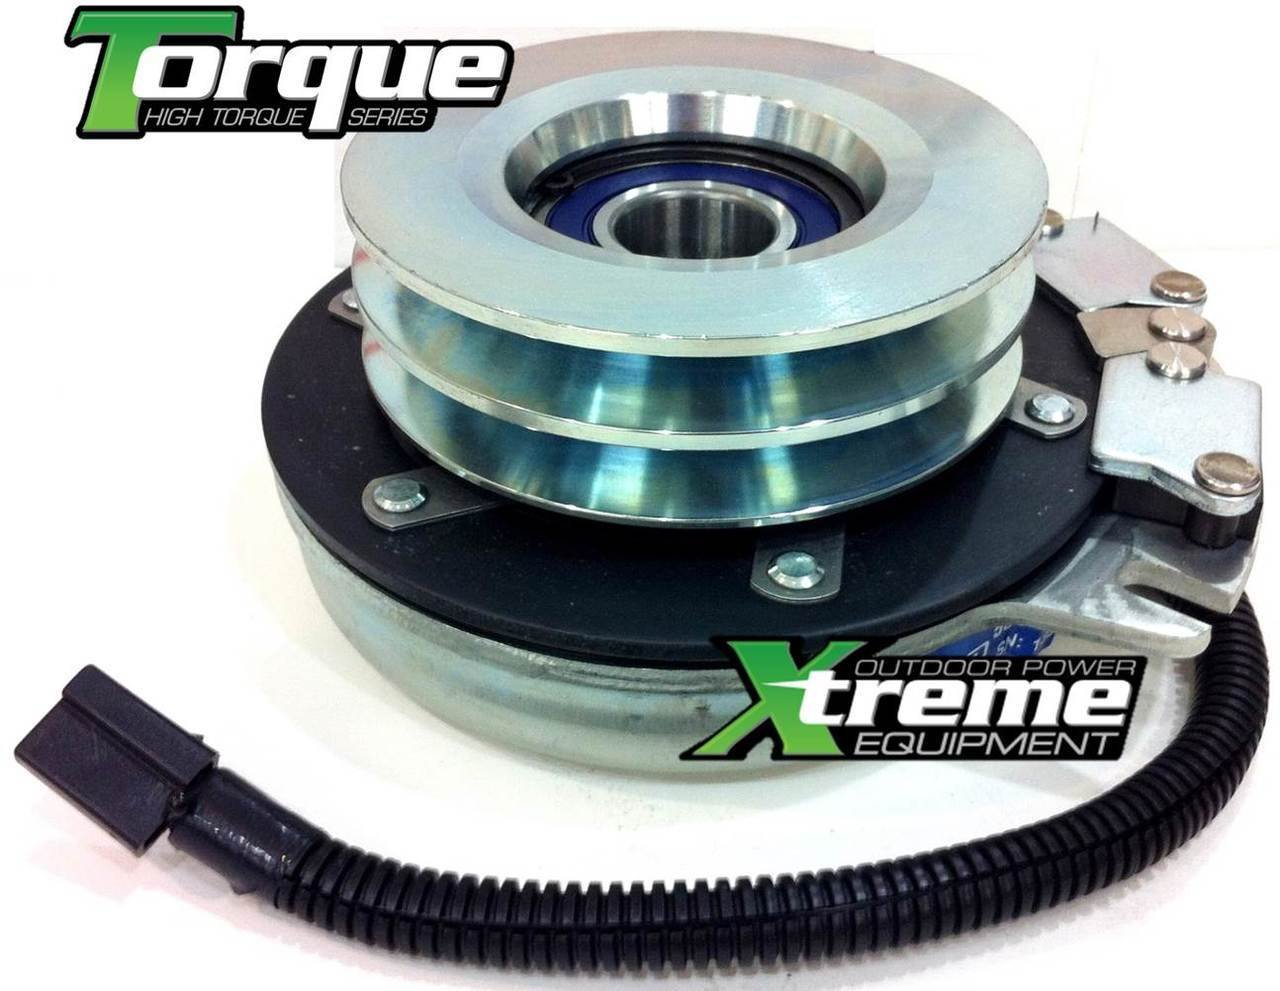 Amazon.com: Electric Pto Clutch for Grasshopper 616, 618, 718, Woods Mower  Tractor 388764, 388765, 606239: Industrial & Scientific